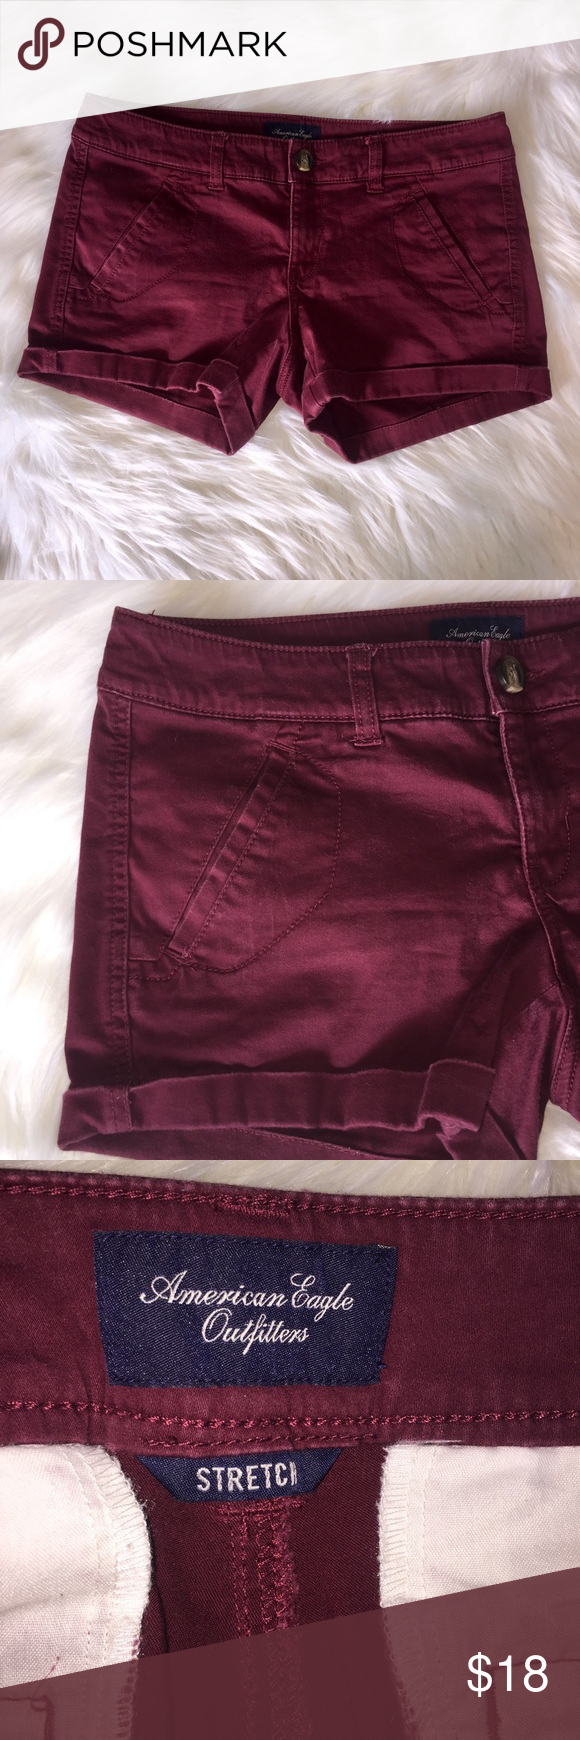 American eagle shorts American eagle stretch burgundy shorts. In great condition! Size 4. 53% cotton, 43% rayon, 3% spandex. American Eagle Outfitters Shorts